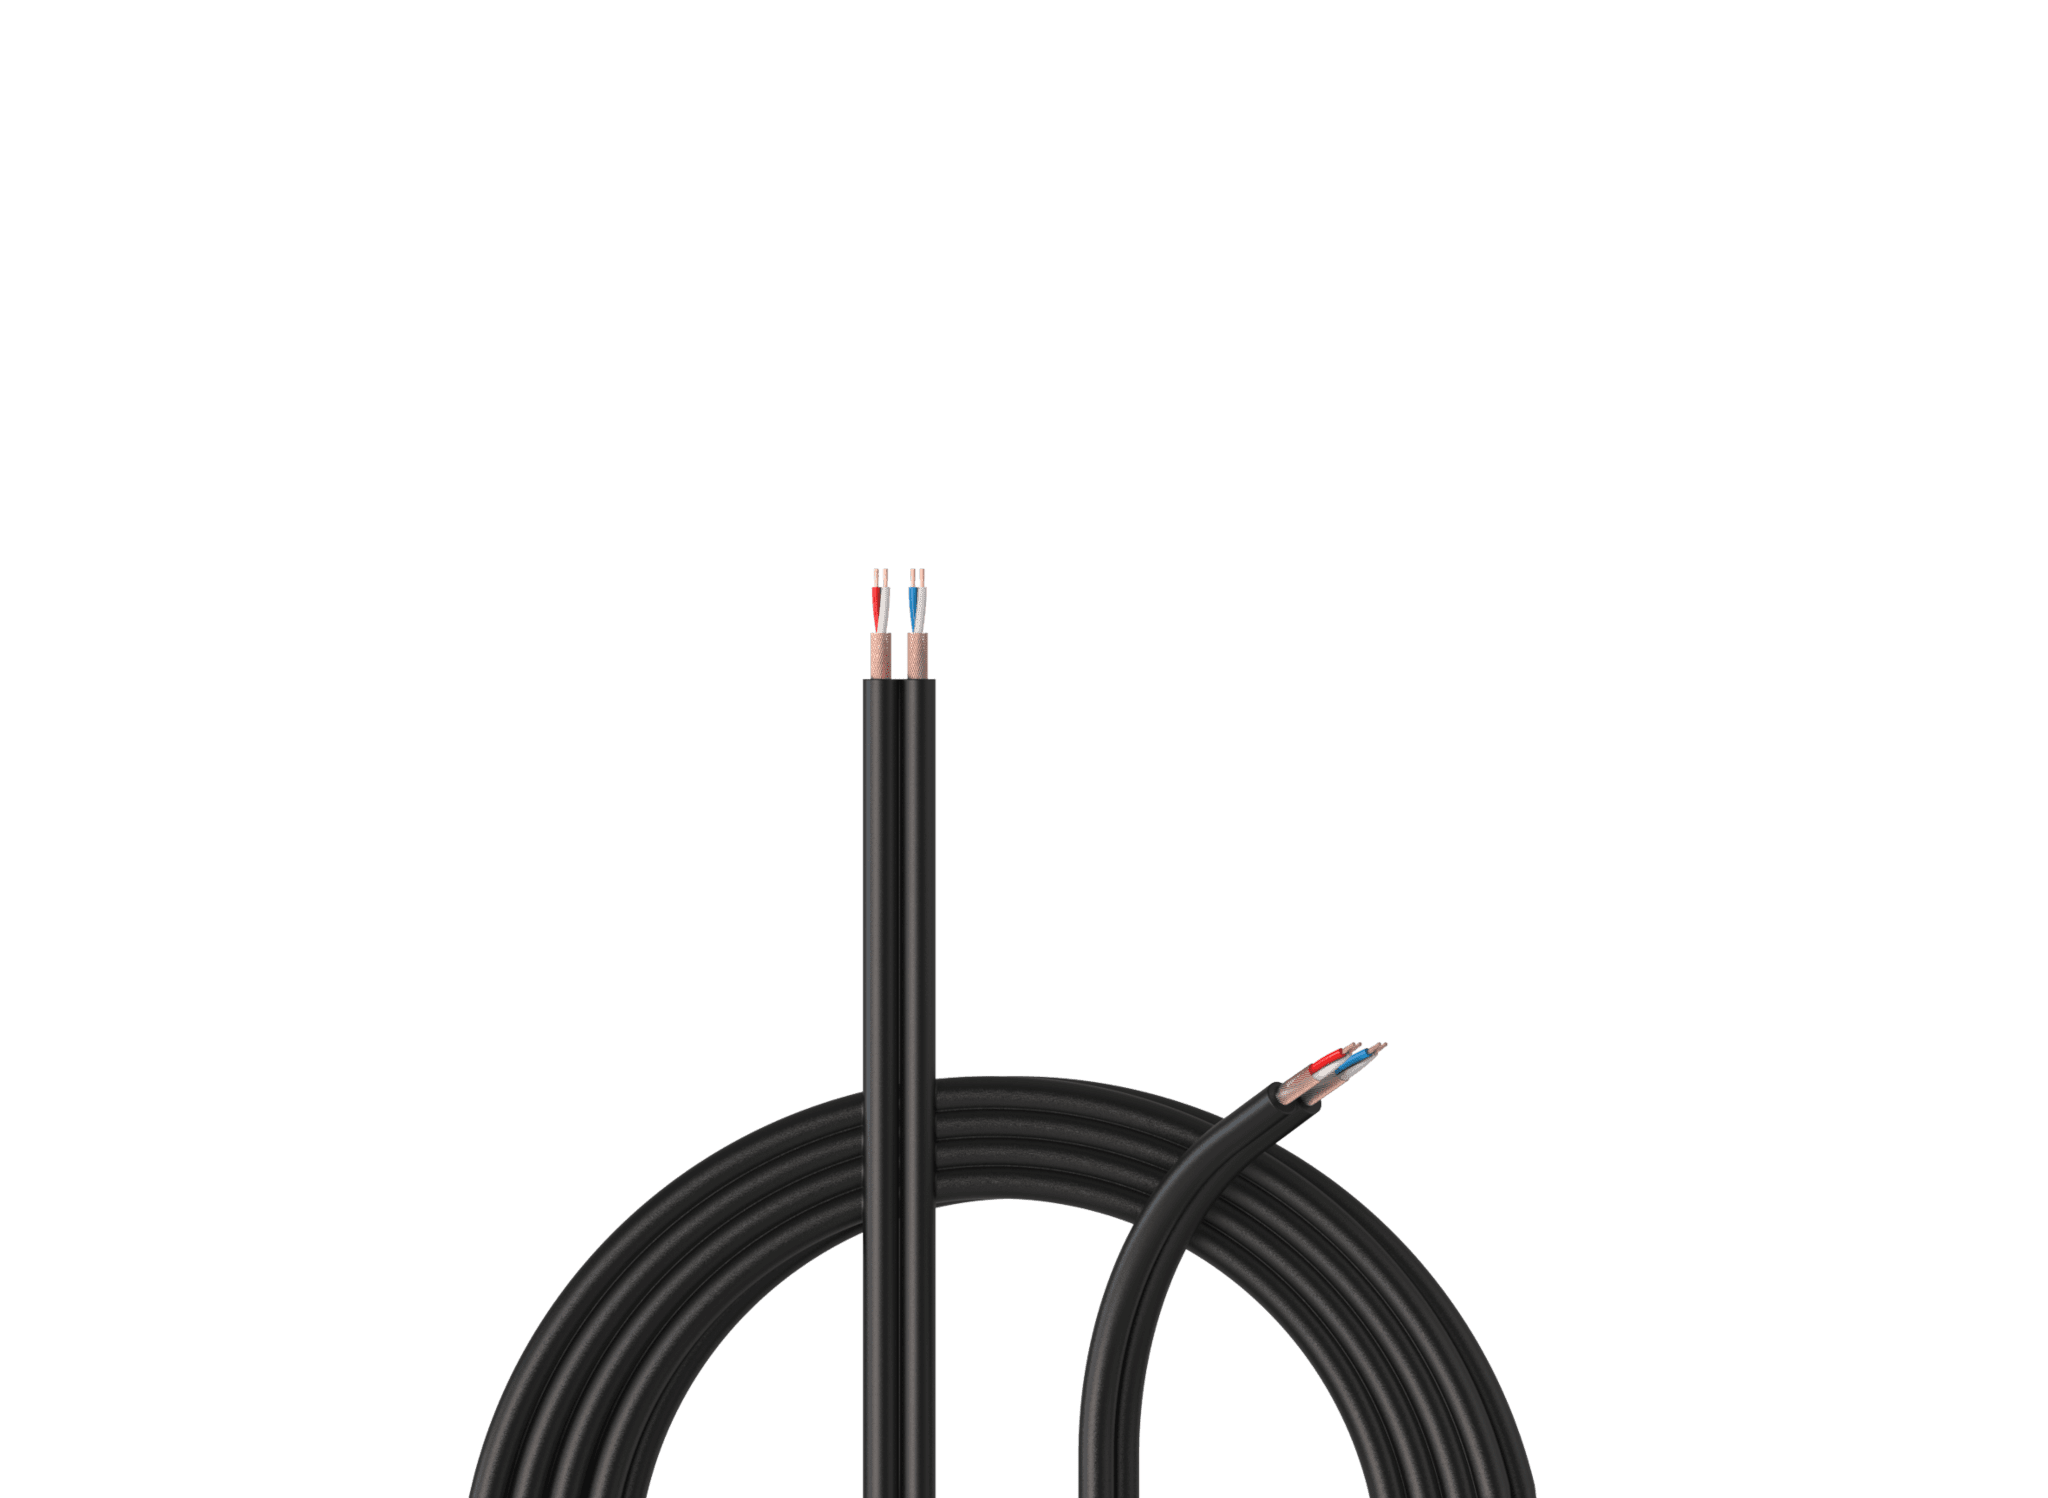 Analog signal cables